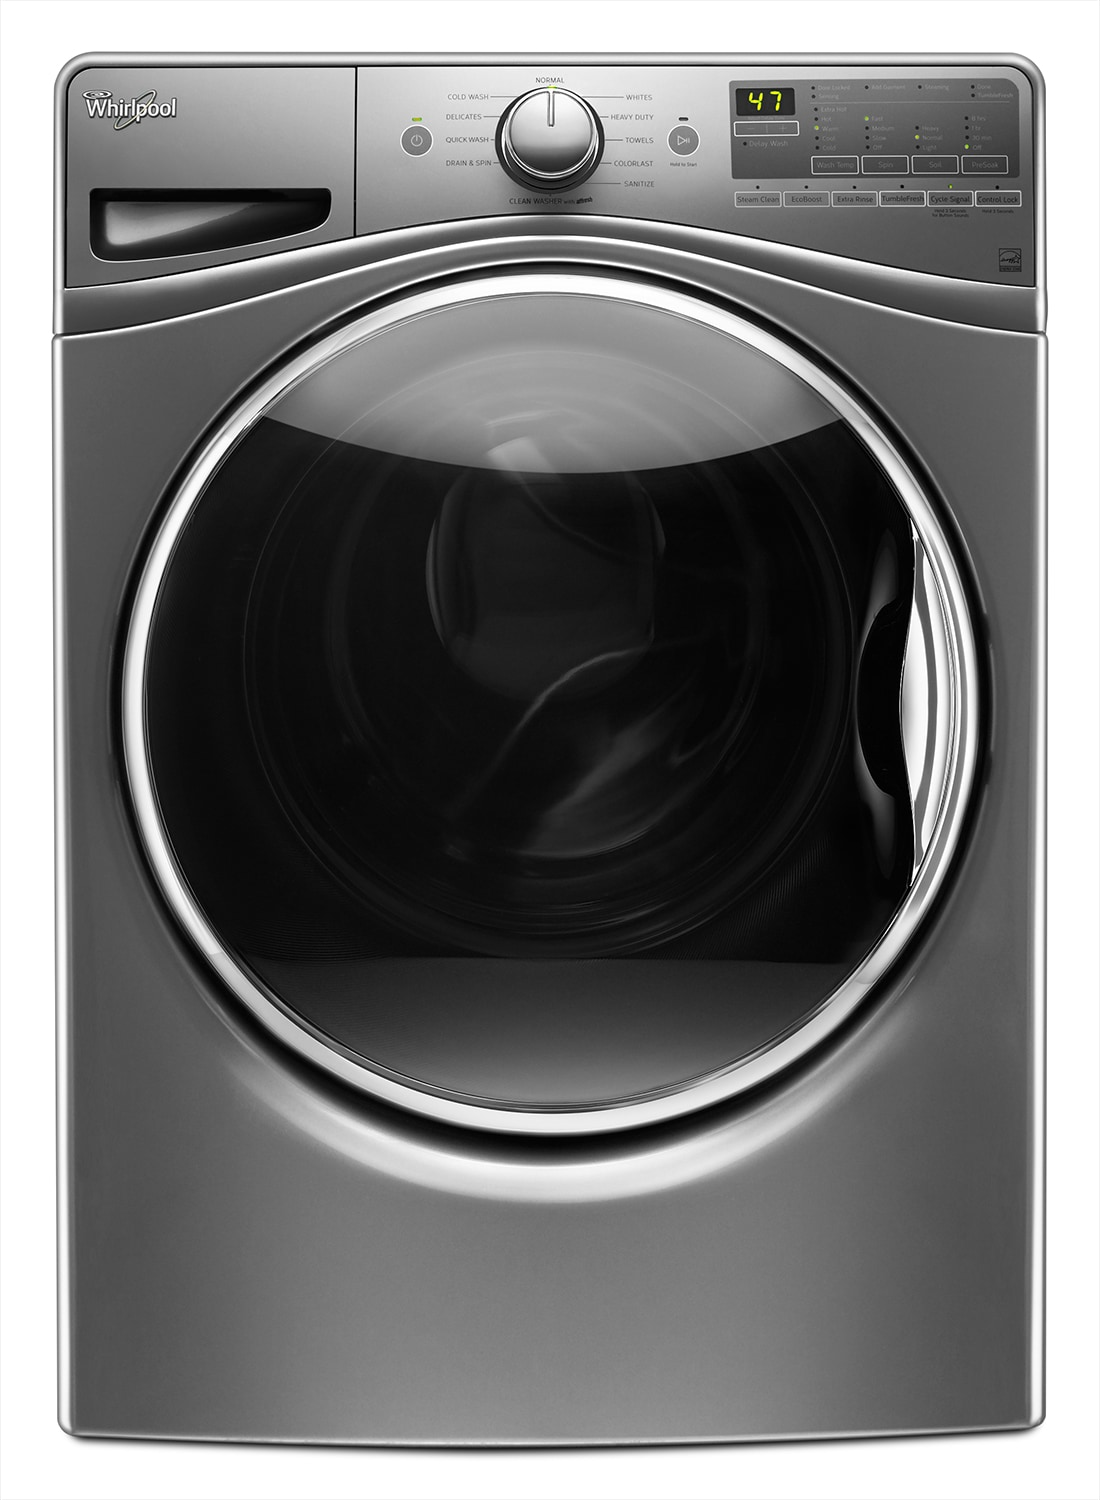 Whirlpool 5.2 Cu. Ft. Front-Load Washer – WFW85HEFC